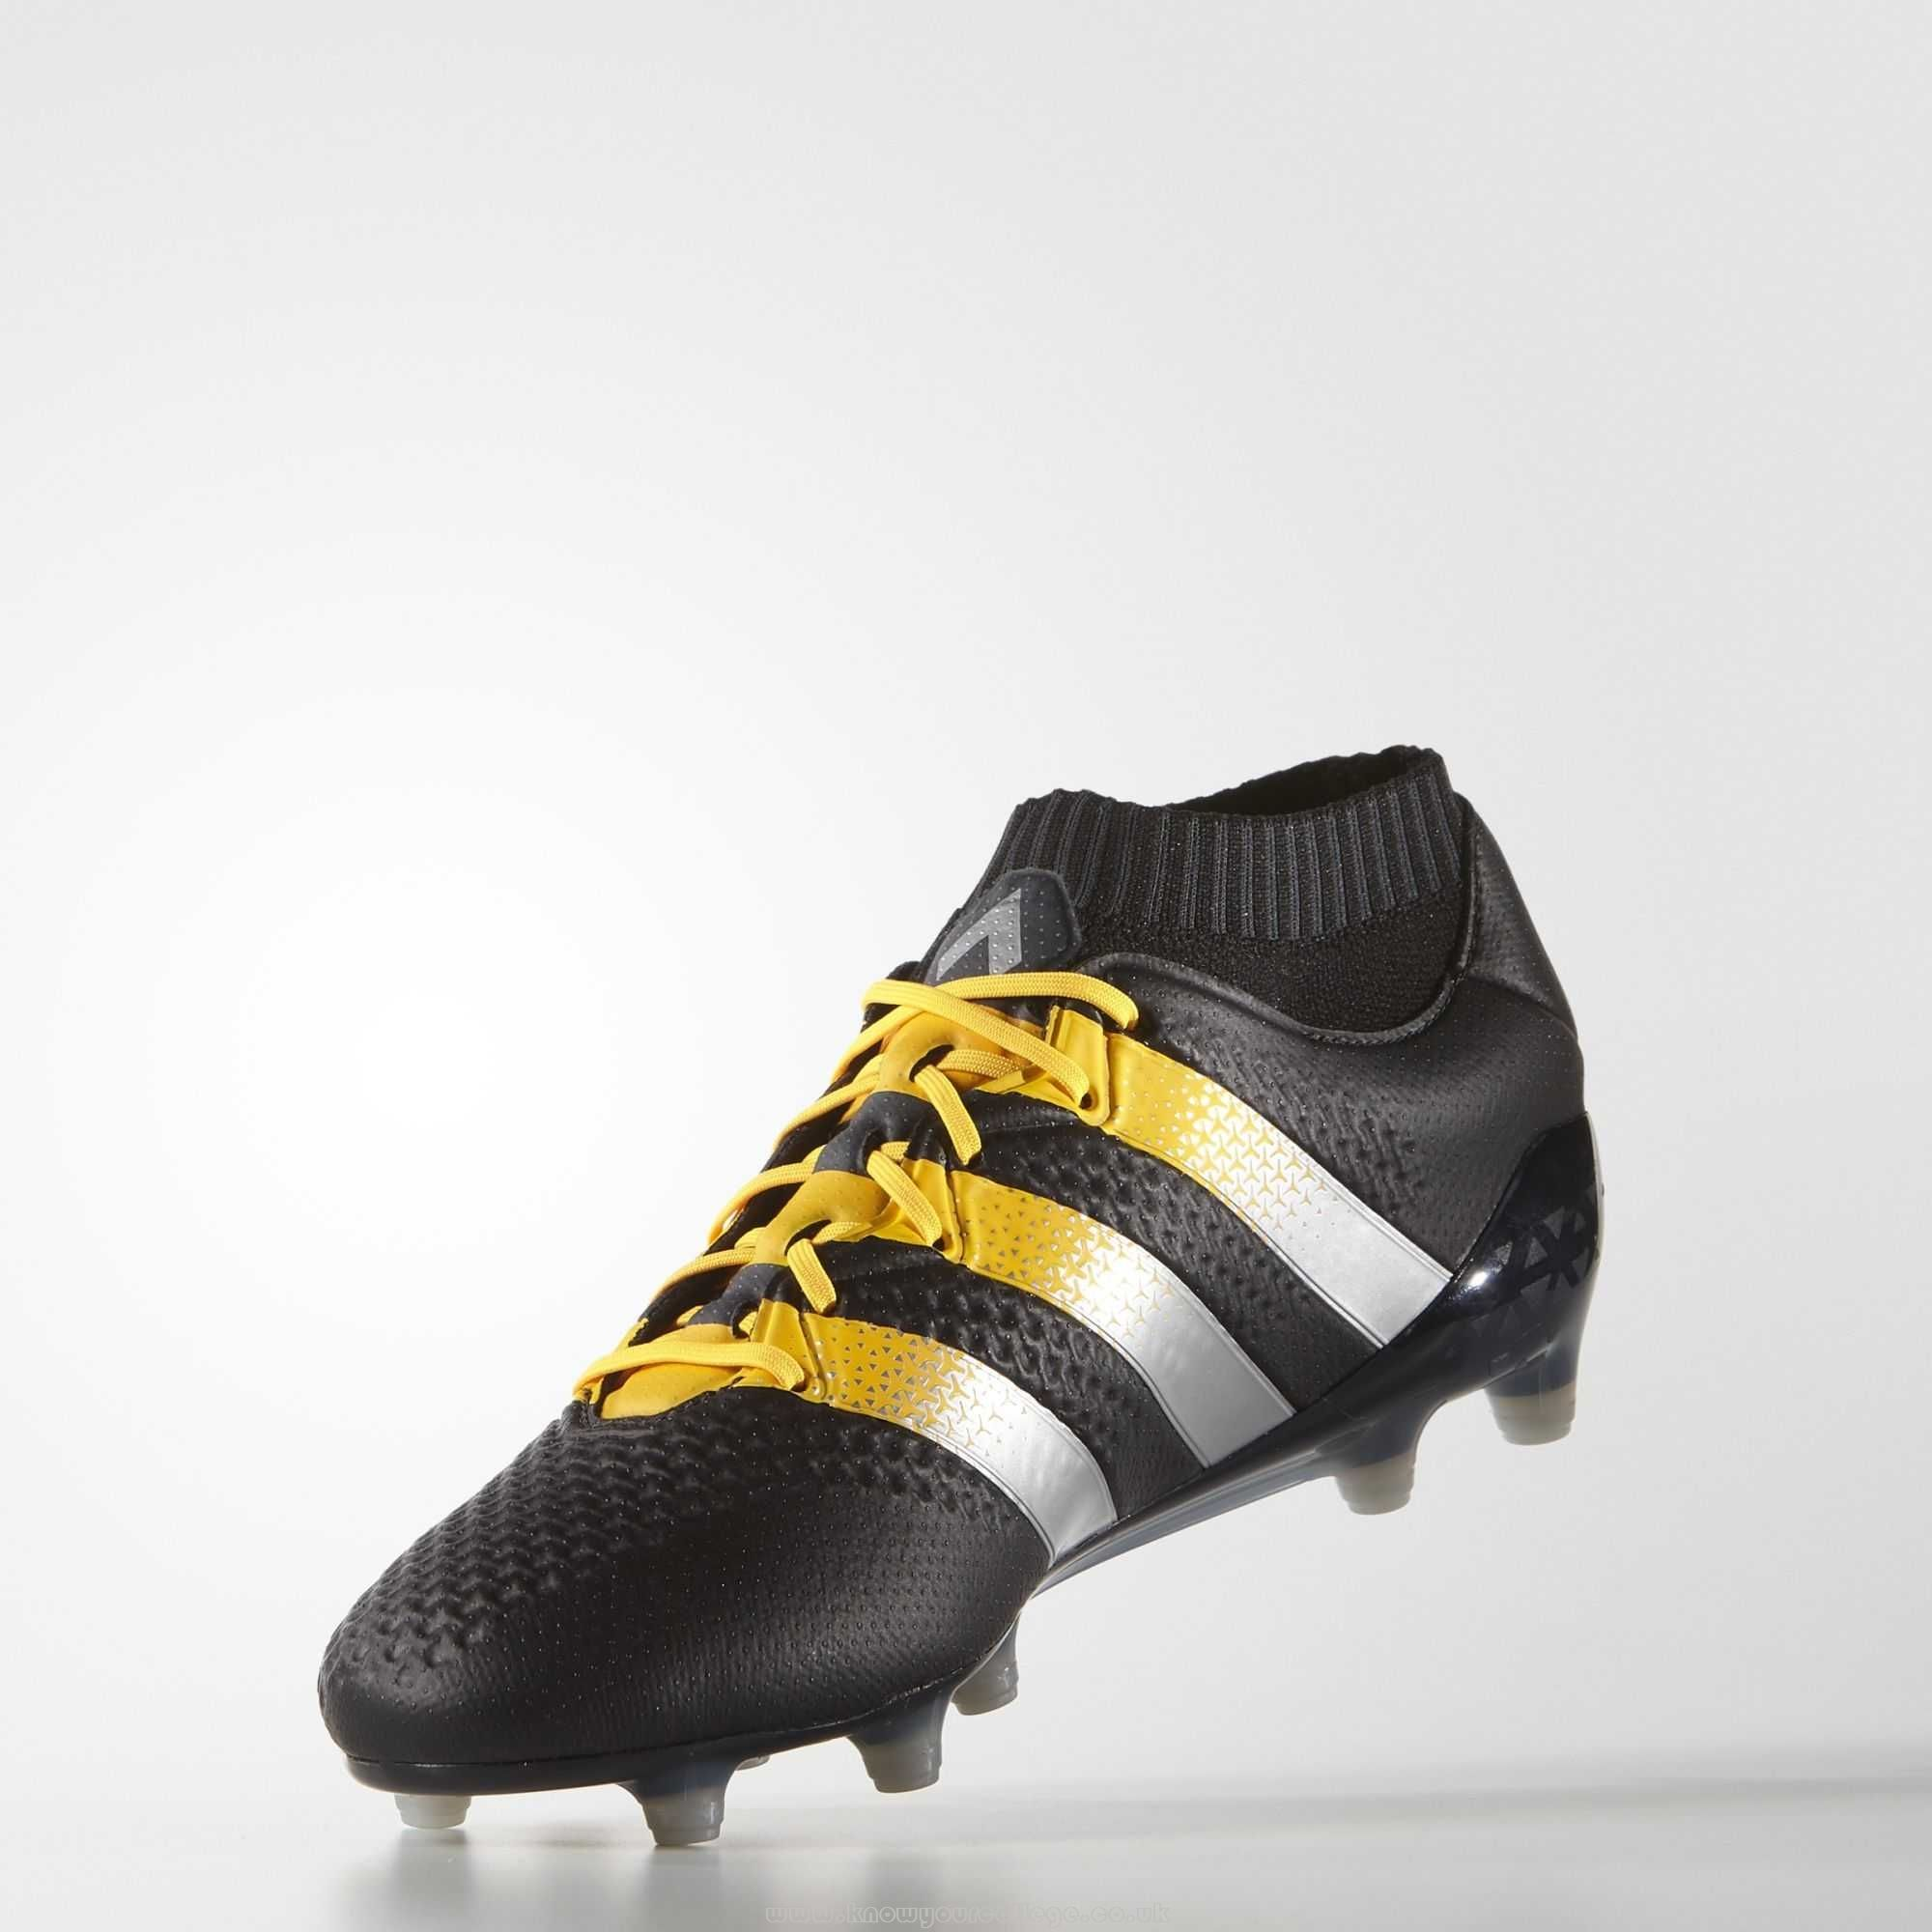 Football Boots Adidas Ace 16+ TKRZ with Black and Solar Green   2014 Adidas  Predator LZ with white and orange   Pinterest   Football boots and Adidas  ...